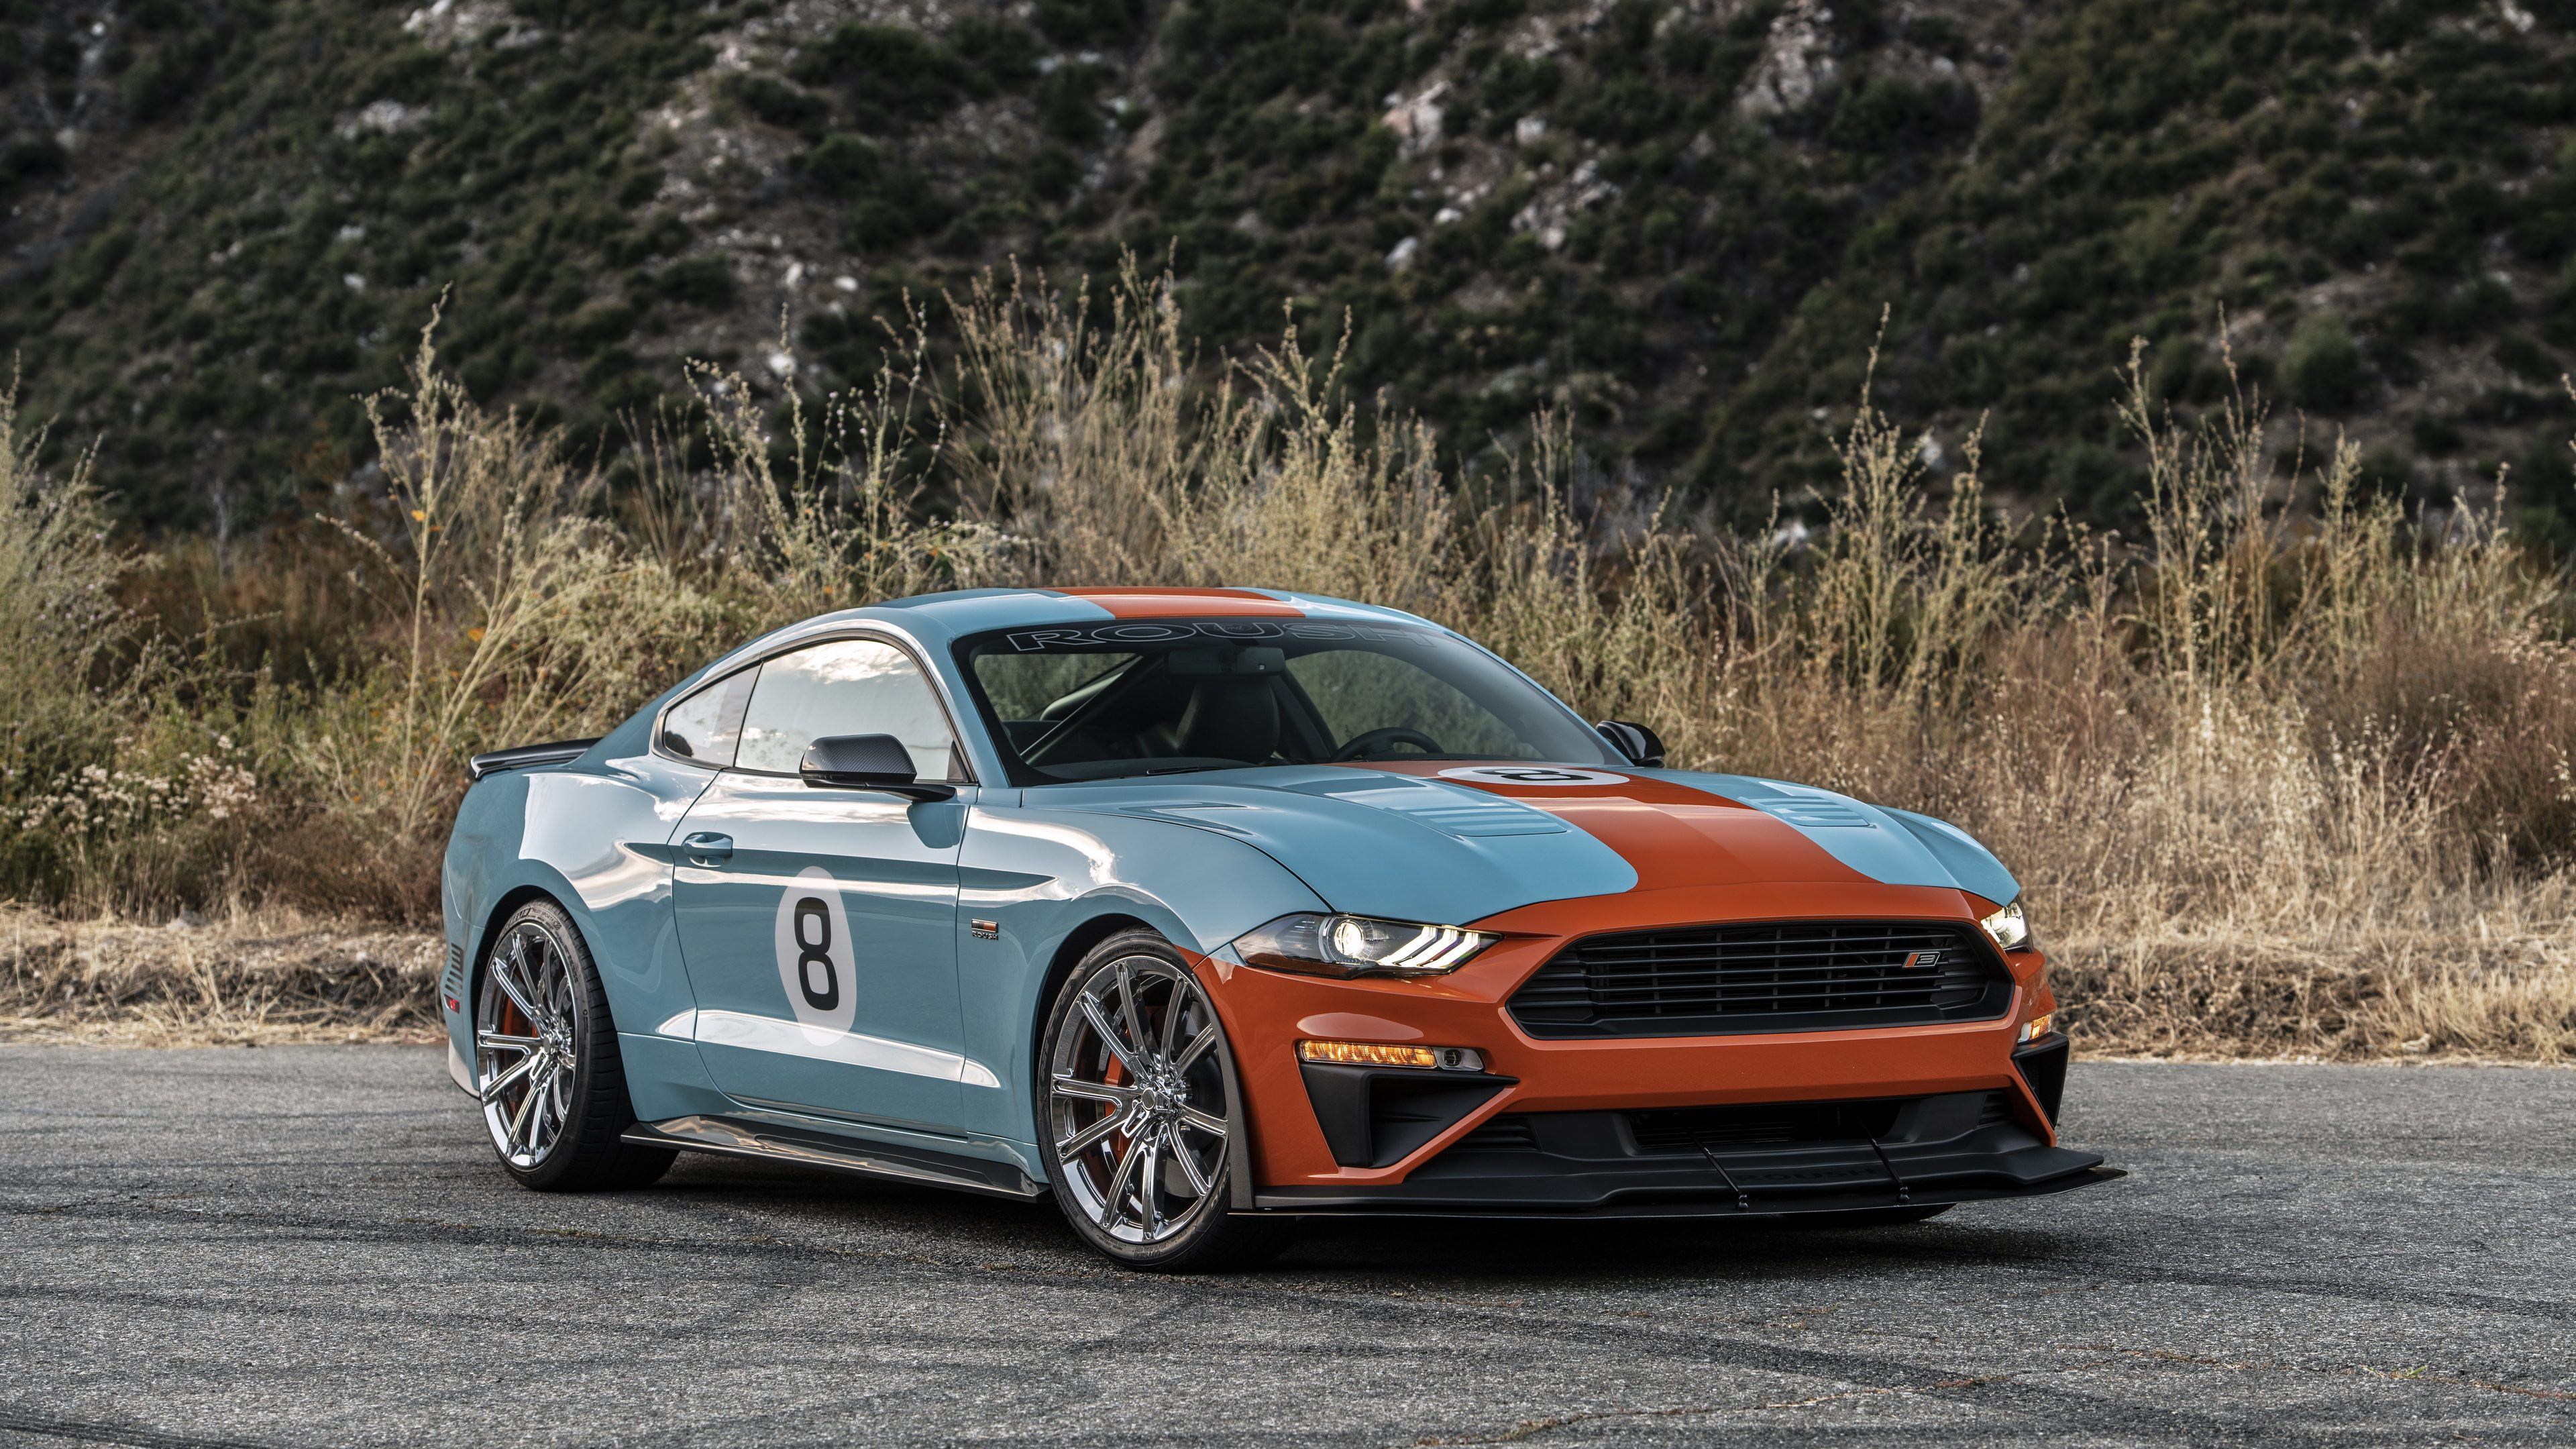 2019 roush performance stage 3 mustang gt 1569189007 - 2019 Roush Performance Stage 3 Mustang Gt - mustang wallpapers, hd-wallpapers, ford mustang wallpapers, cars wallpapers, 8k wallpapers, 5k wallpapers, 4k-wallpapers, 2019 cars wallpapers